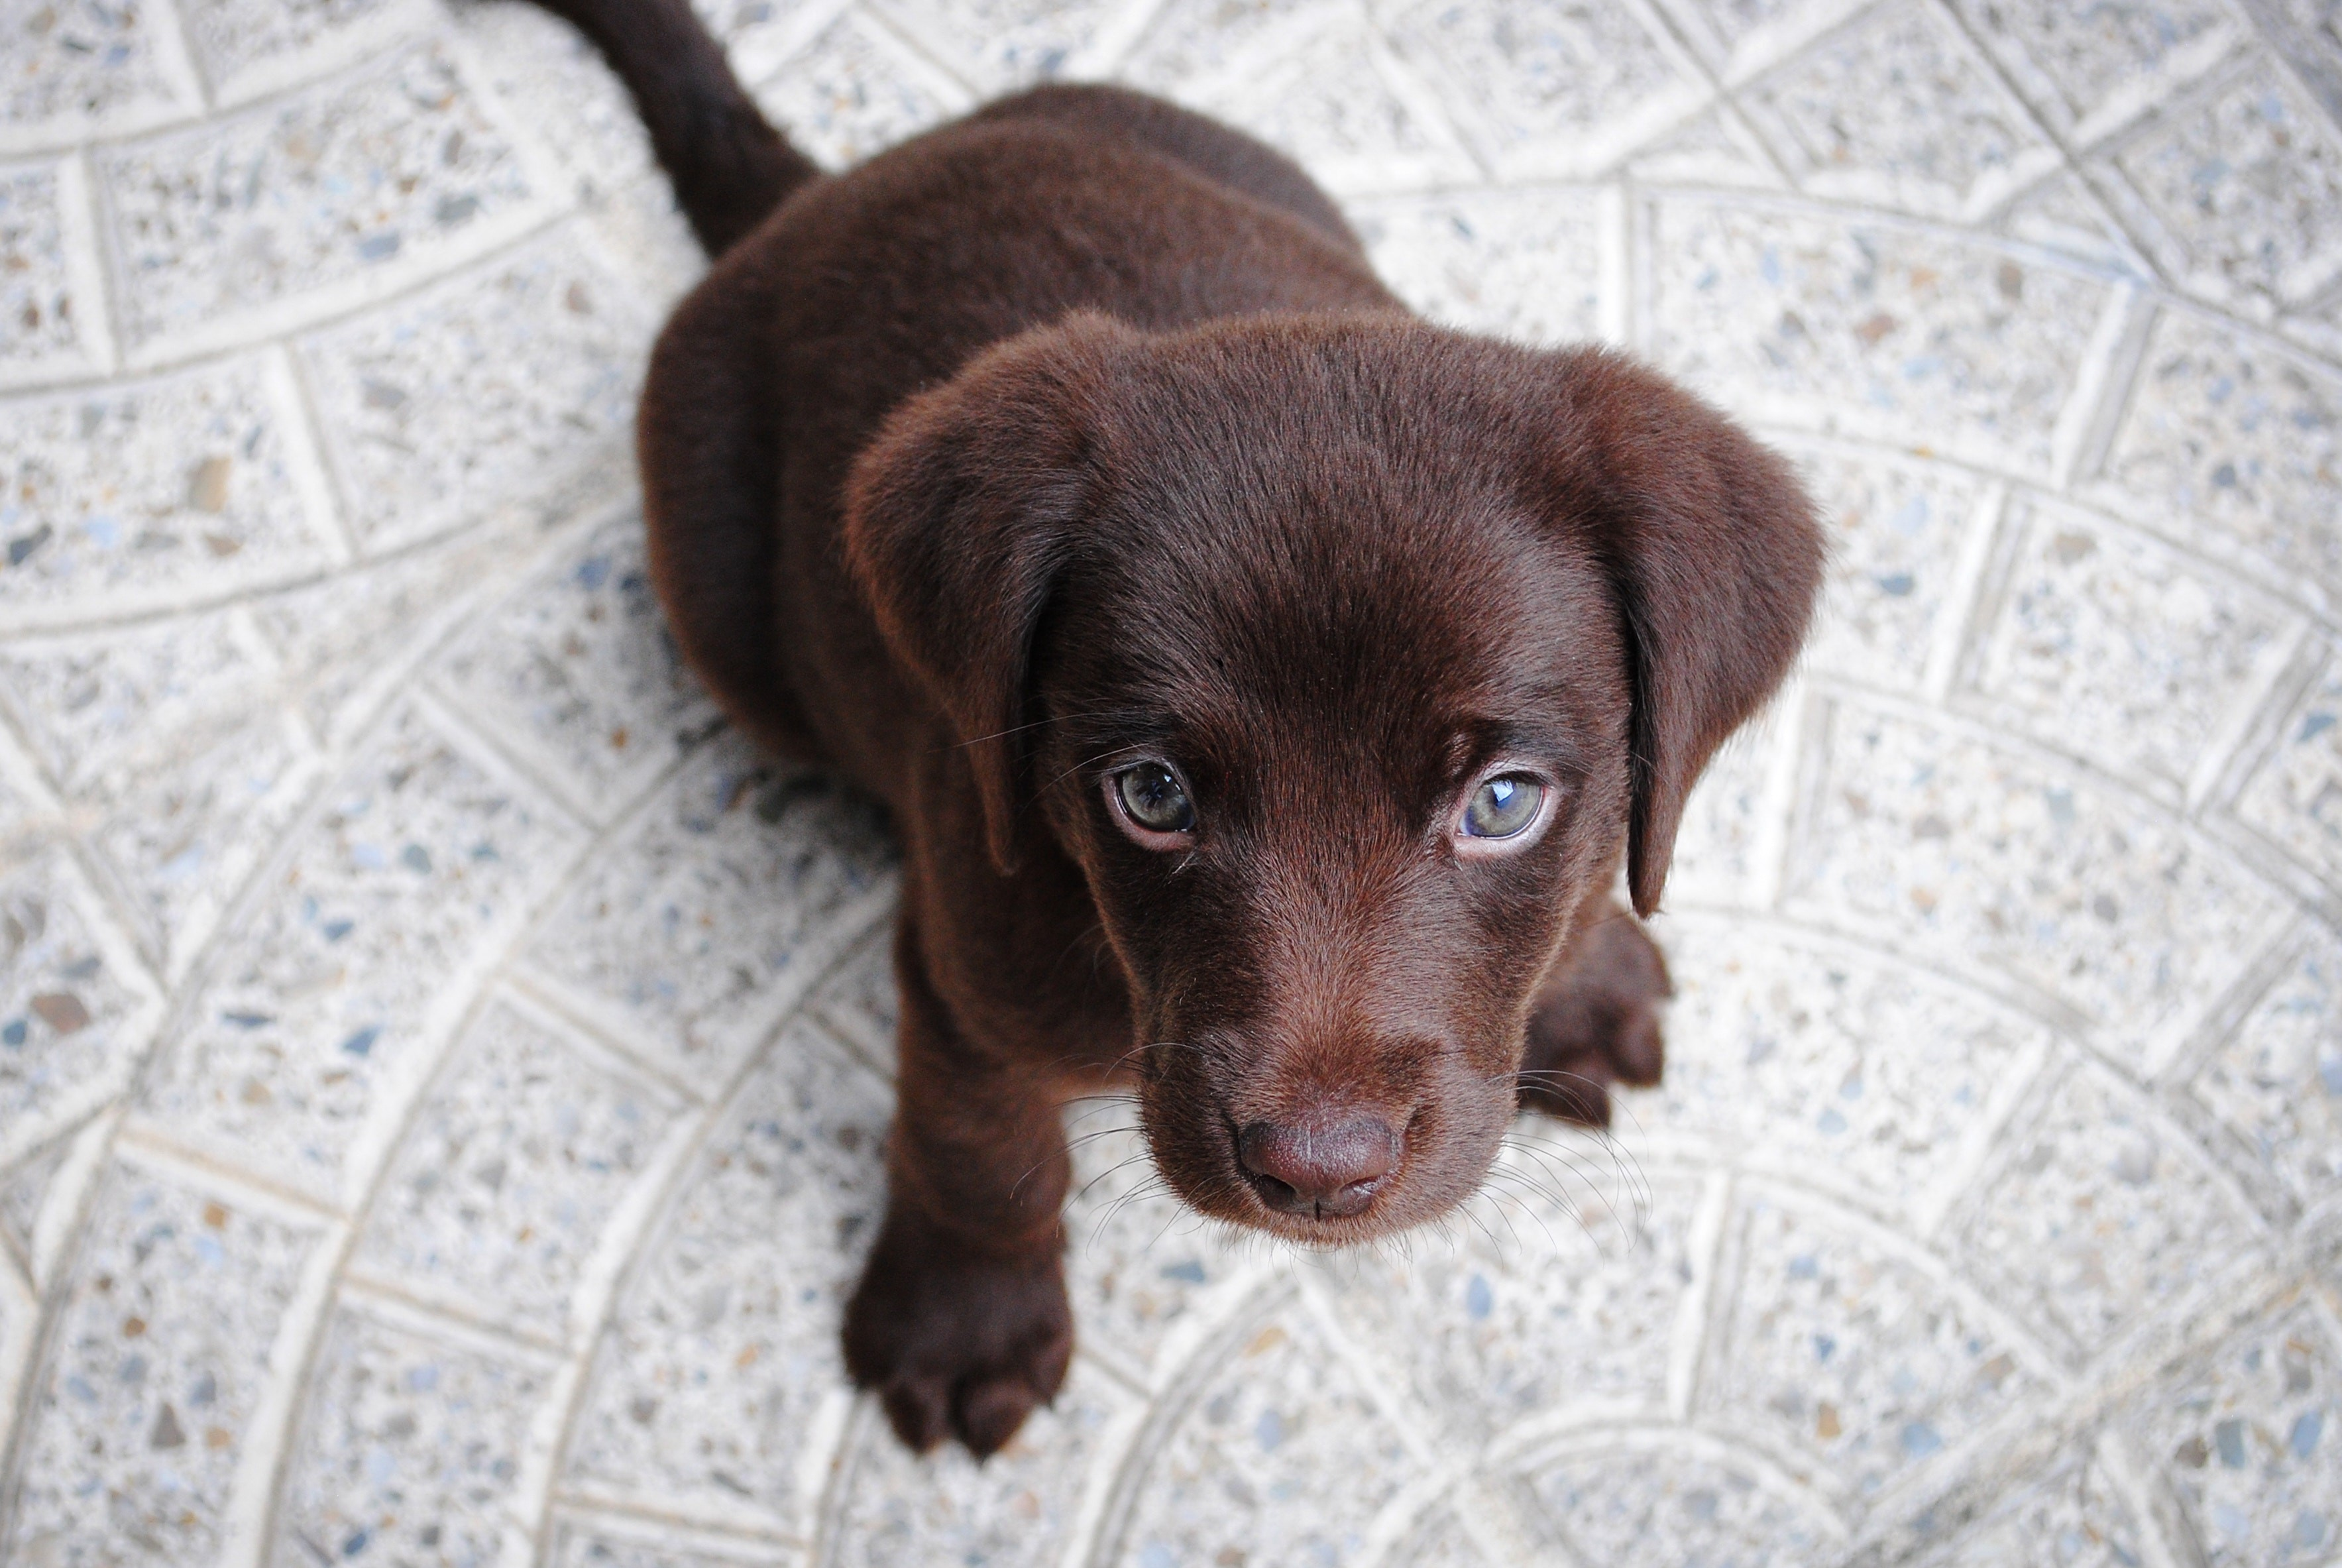 View from above of a cute brown puppy looking up